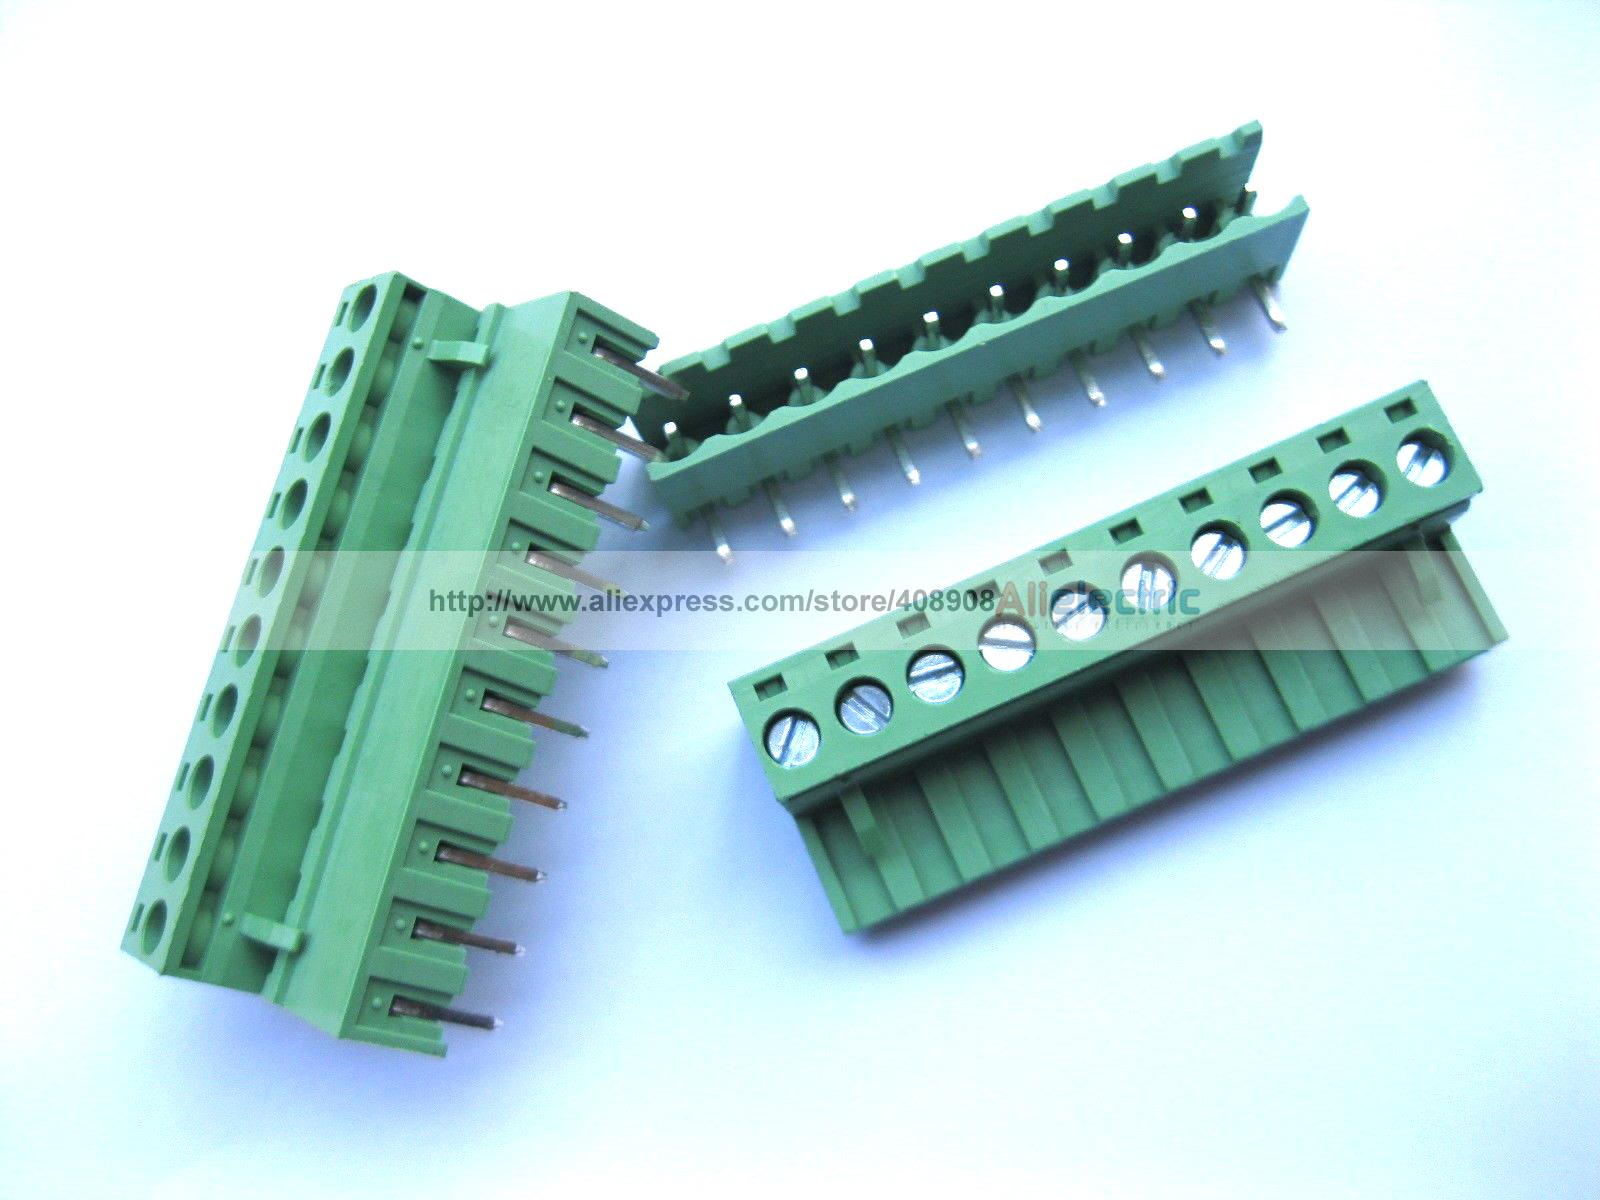 40 Pcs 5.08mm Angle 10 Pin Screw Terminal Block Connector Pluggable Type Green 30 pcs screw terminal block connector 3 81mm 12 pin green pluggable type